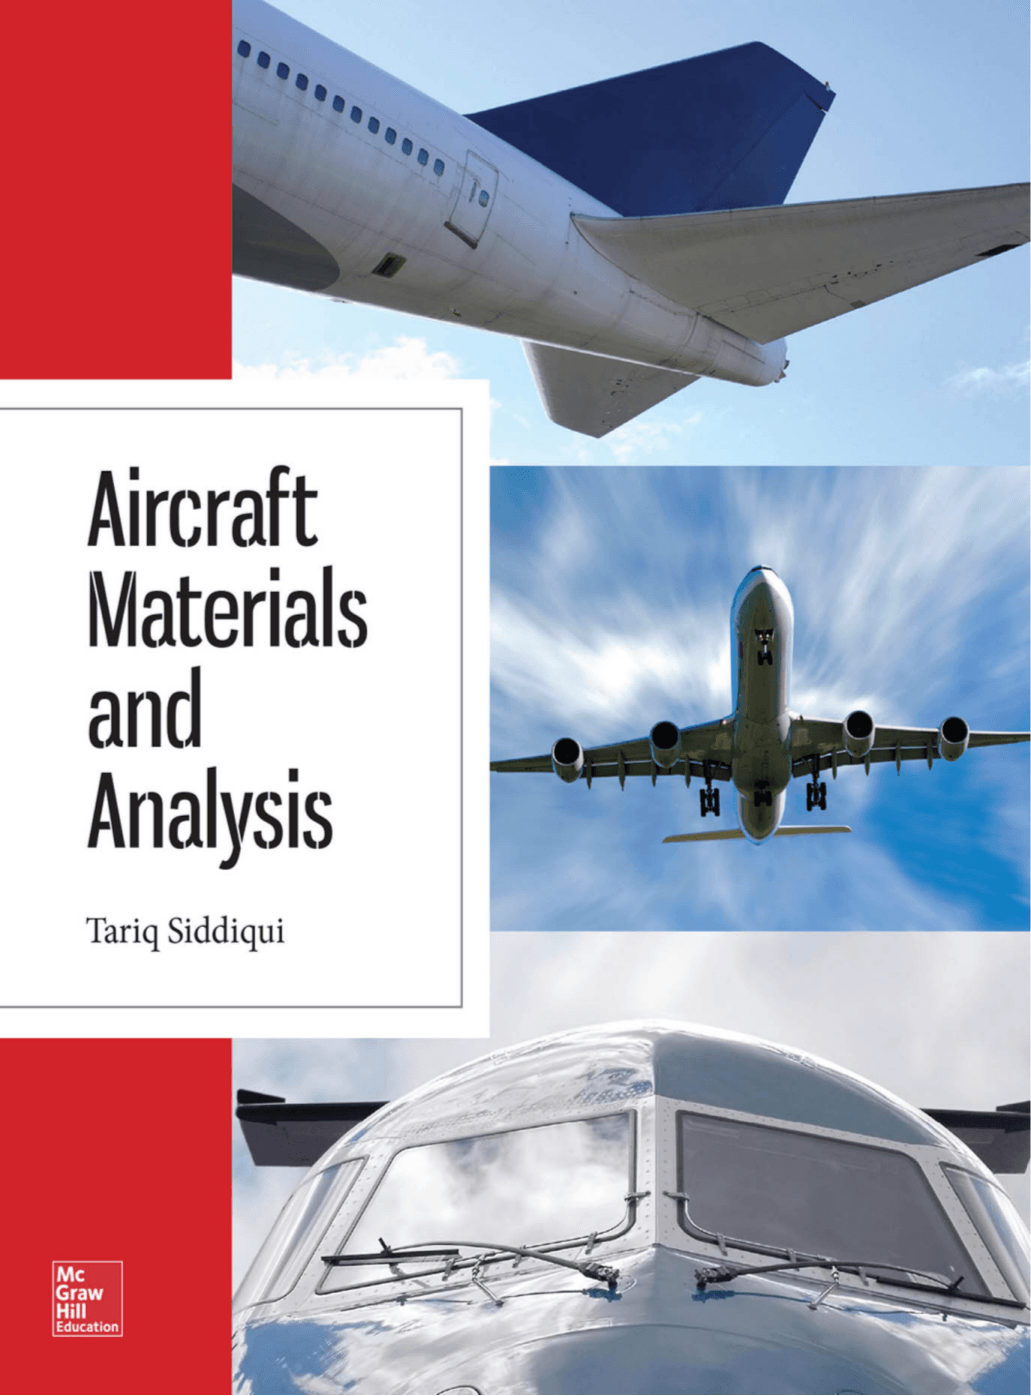 an analysis of aircraft investigation Introduction this light bulb investigation analysis is a part of air accident investigation from aircraft manufacture to analyse the accident that involved hard landing where no flight data is available.